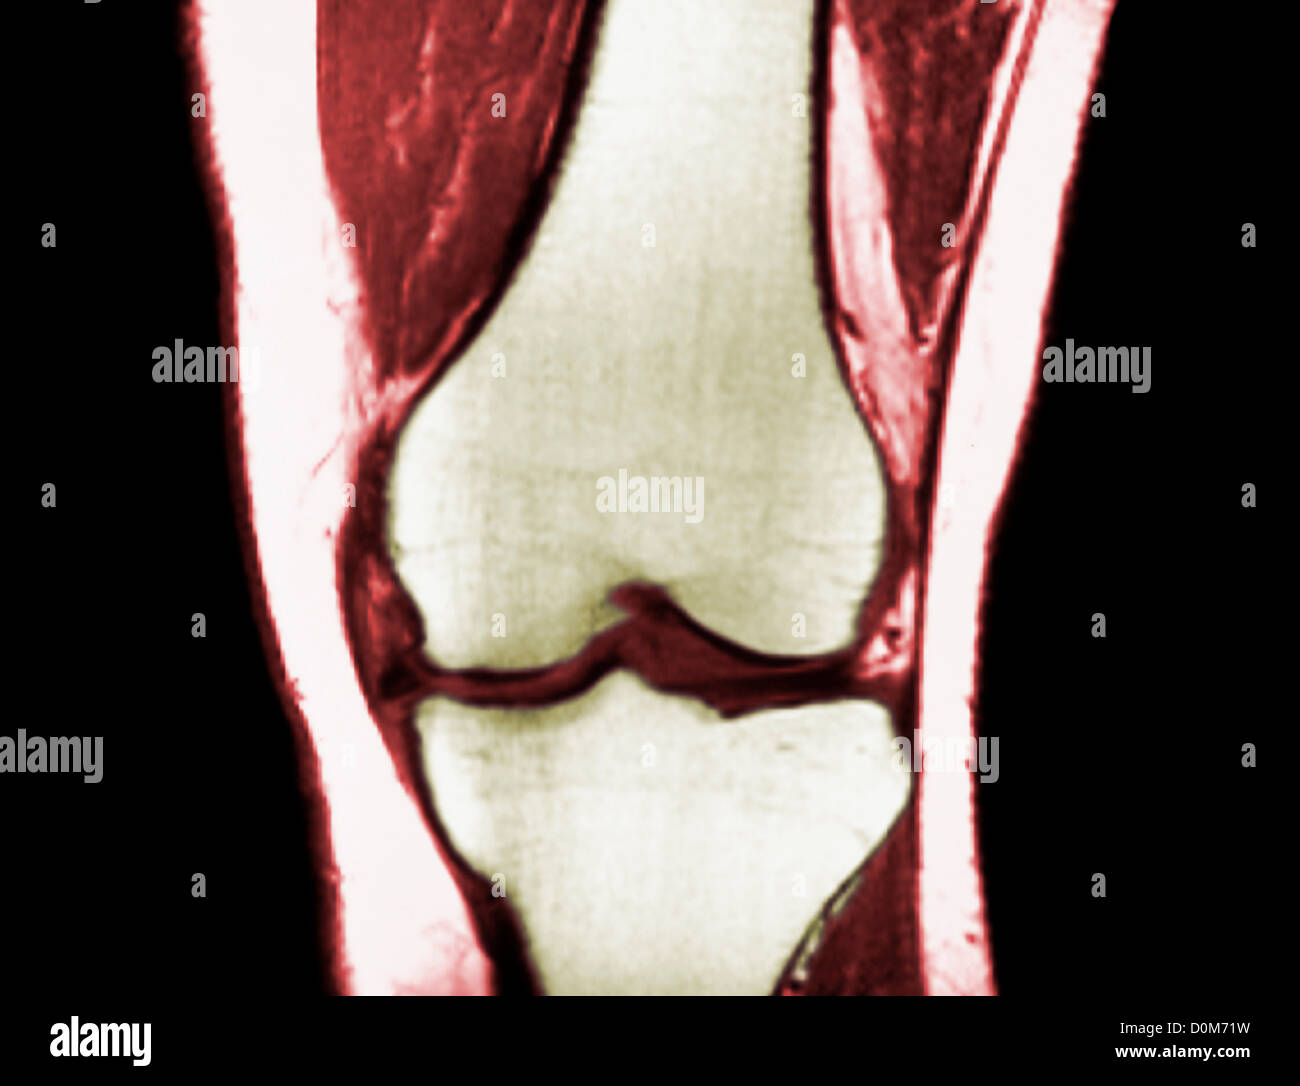 MRI Scan of the Left Knee, Front View, Showing a Medial Meniscus ...